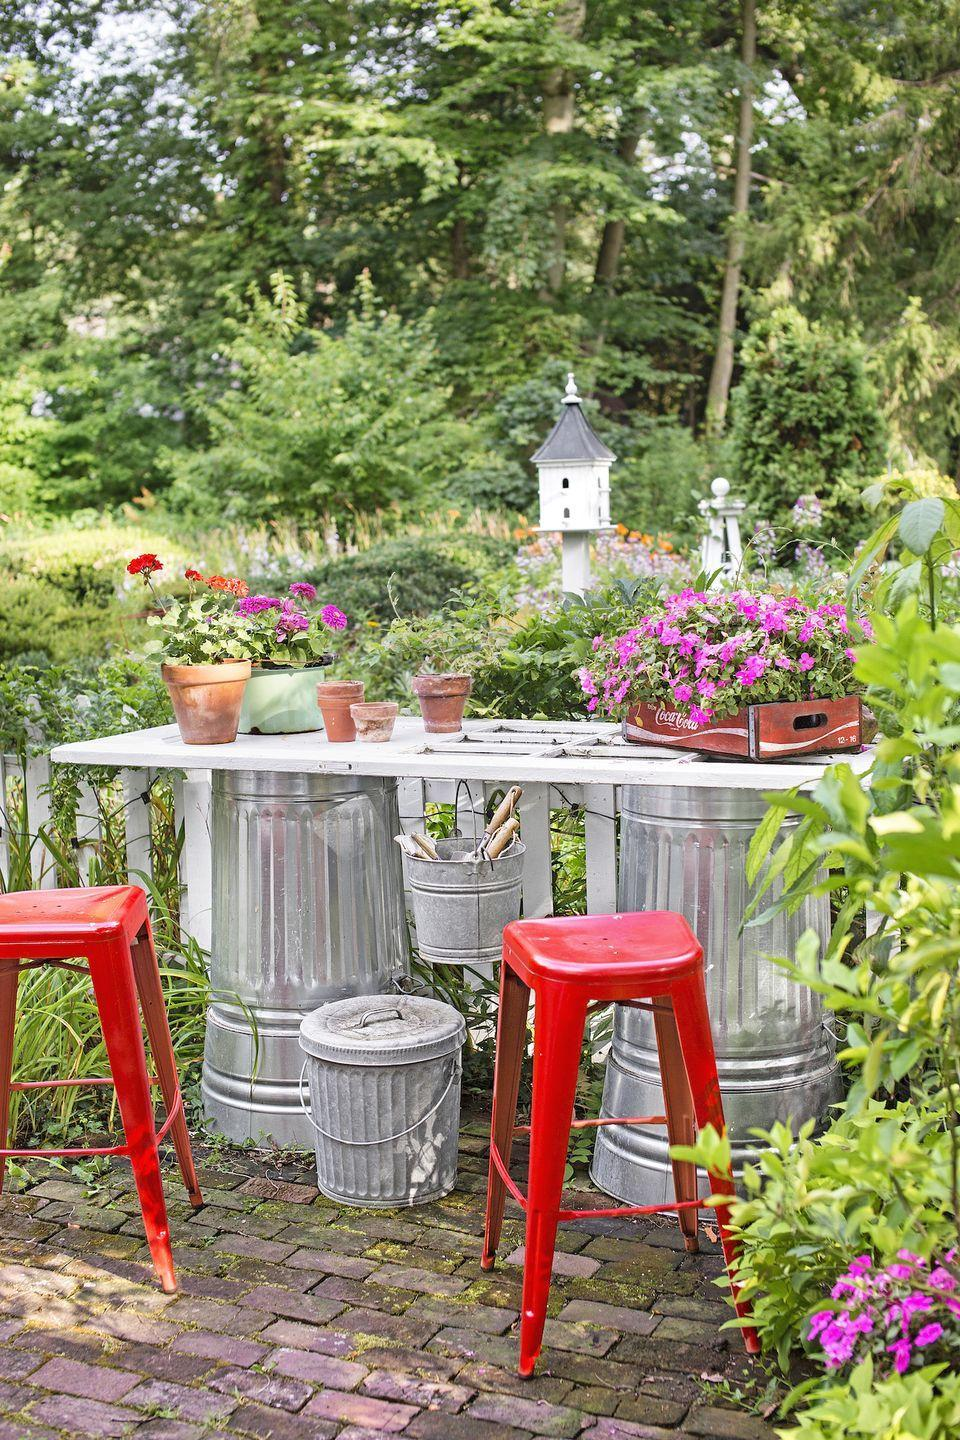 <p>Take upcycling to the next level: For a budget-friendly work bench, attach an old door or piece of wood to two waist-height metal pails or garbage cans. Place it near your garden, so you can keep your eye on your bounty as you work your magic. </p>